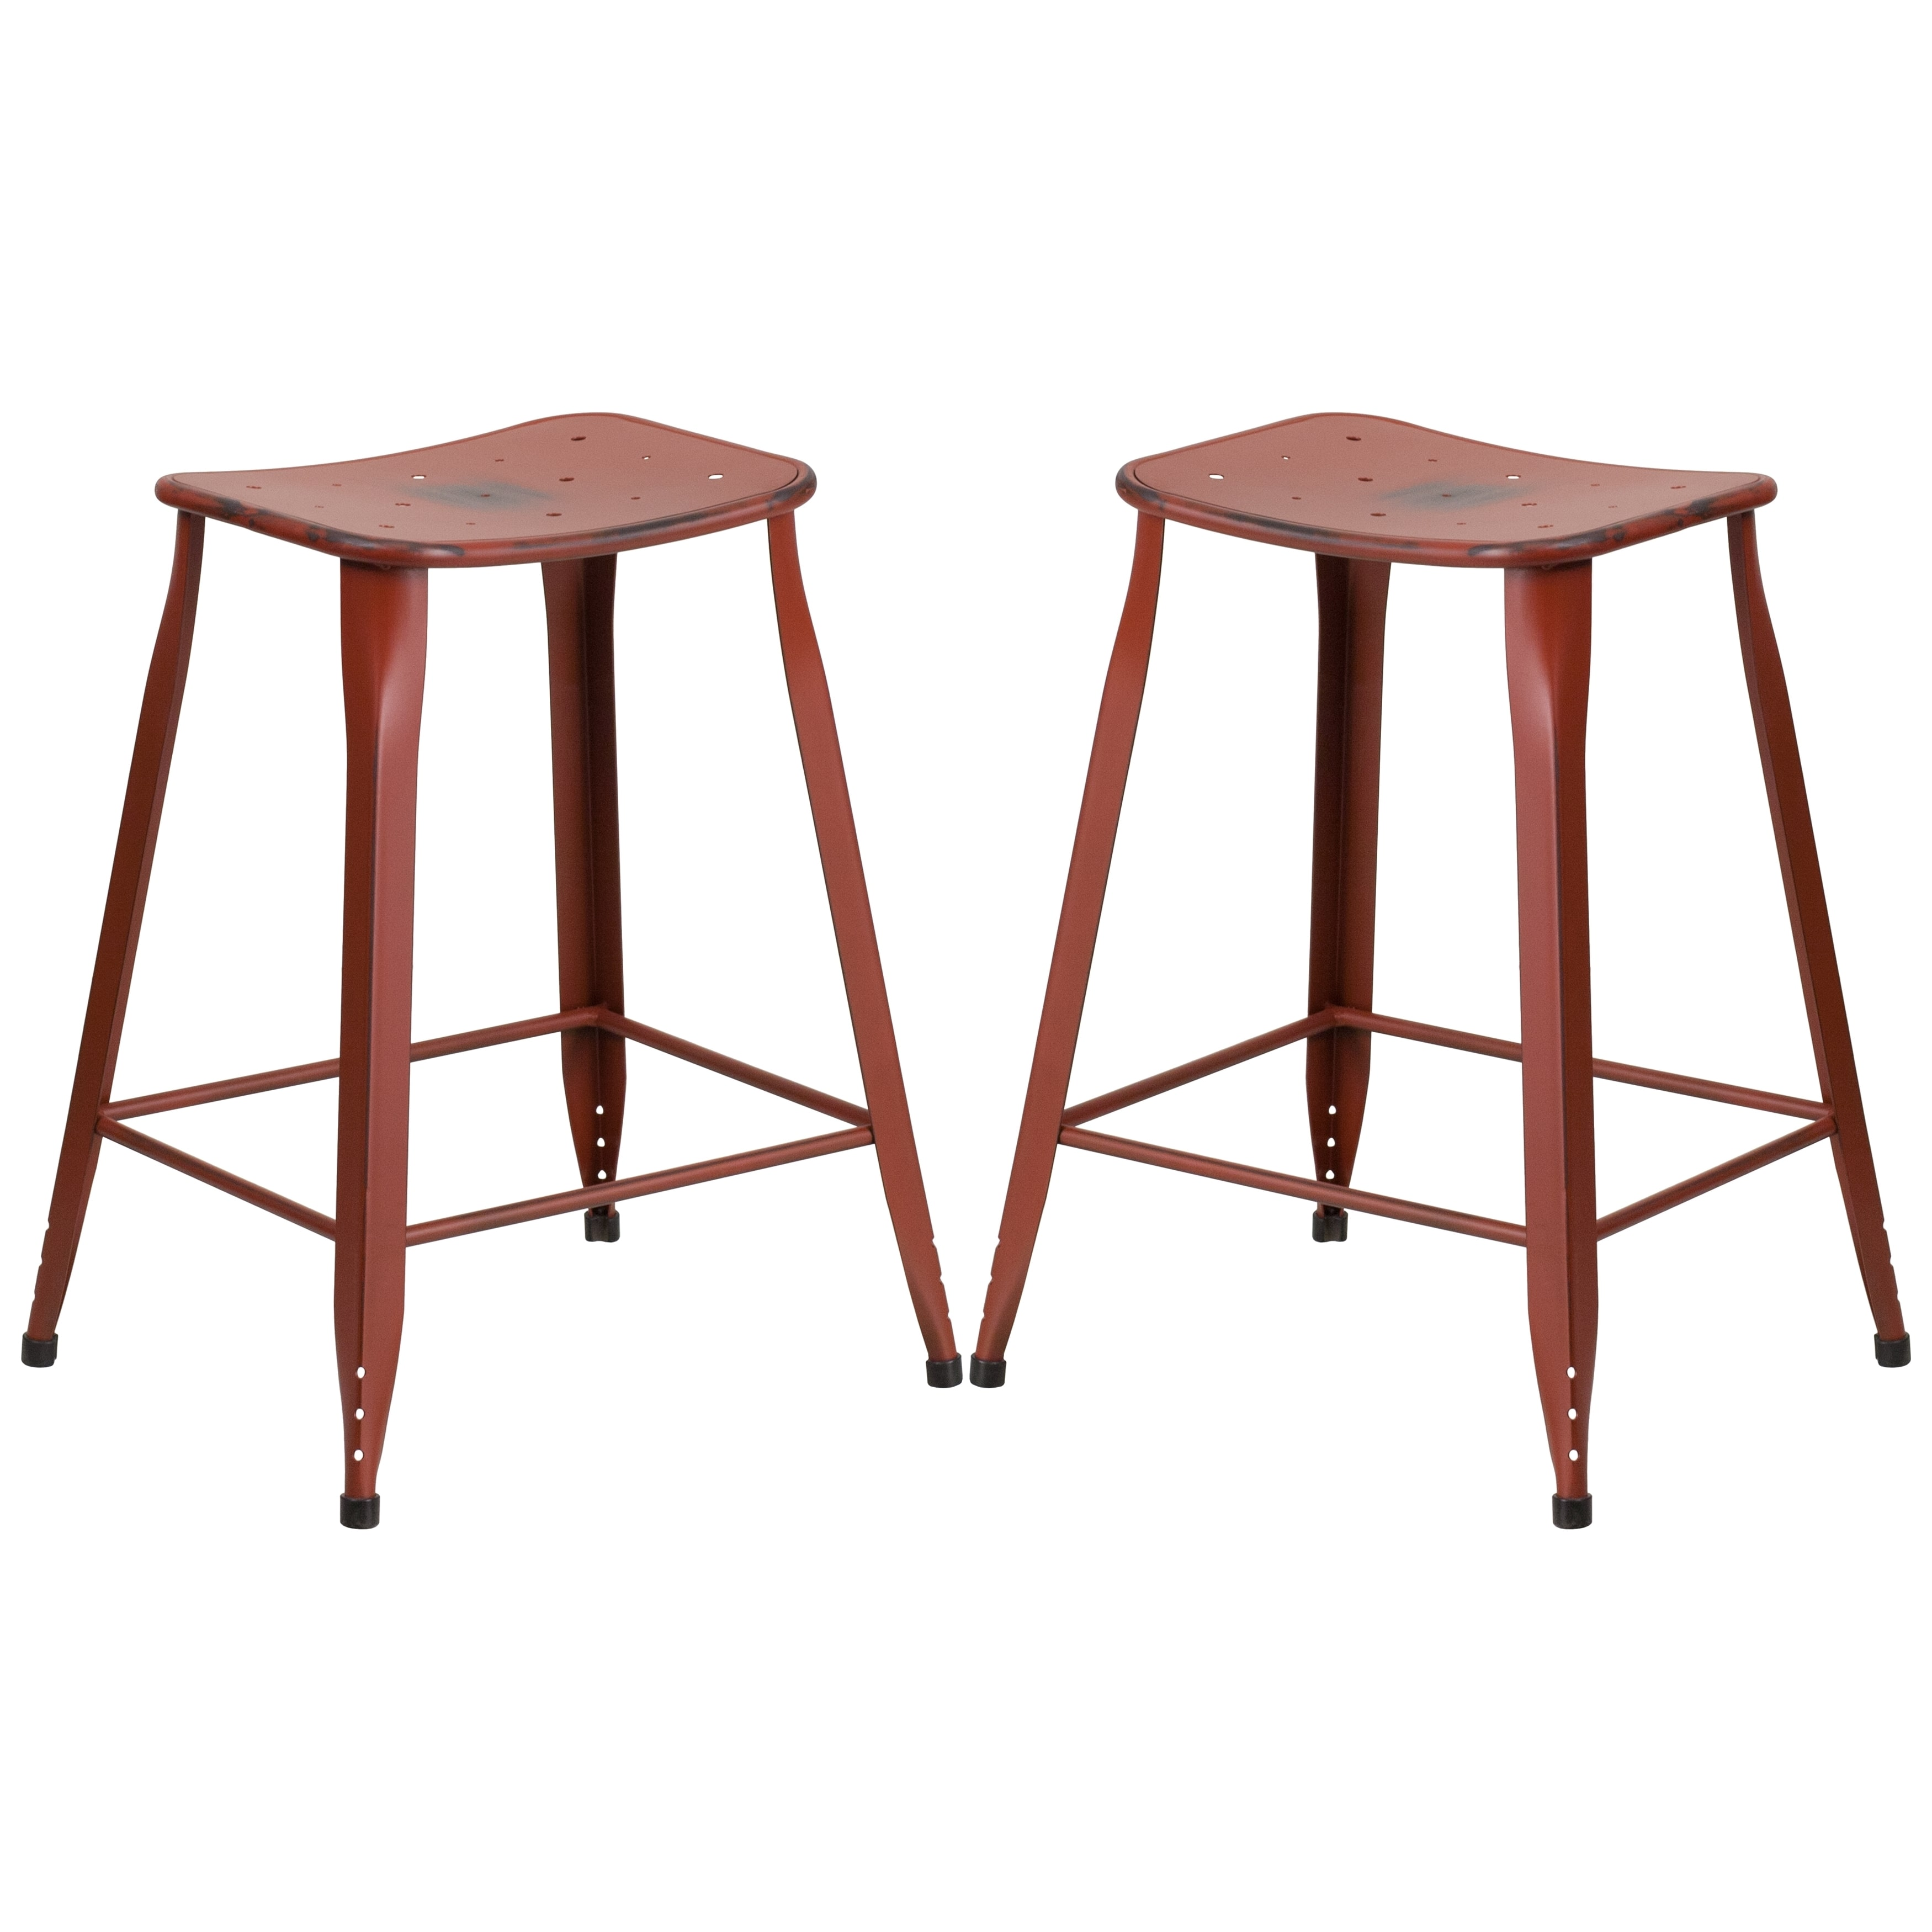 A Line Furniture Distressed Red Galvanized Metal 24 Inch Stool